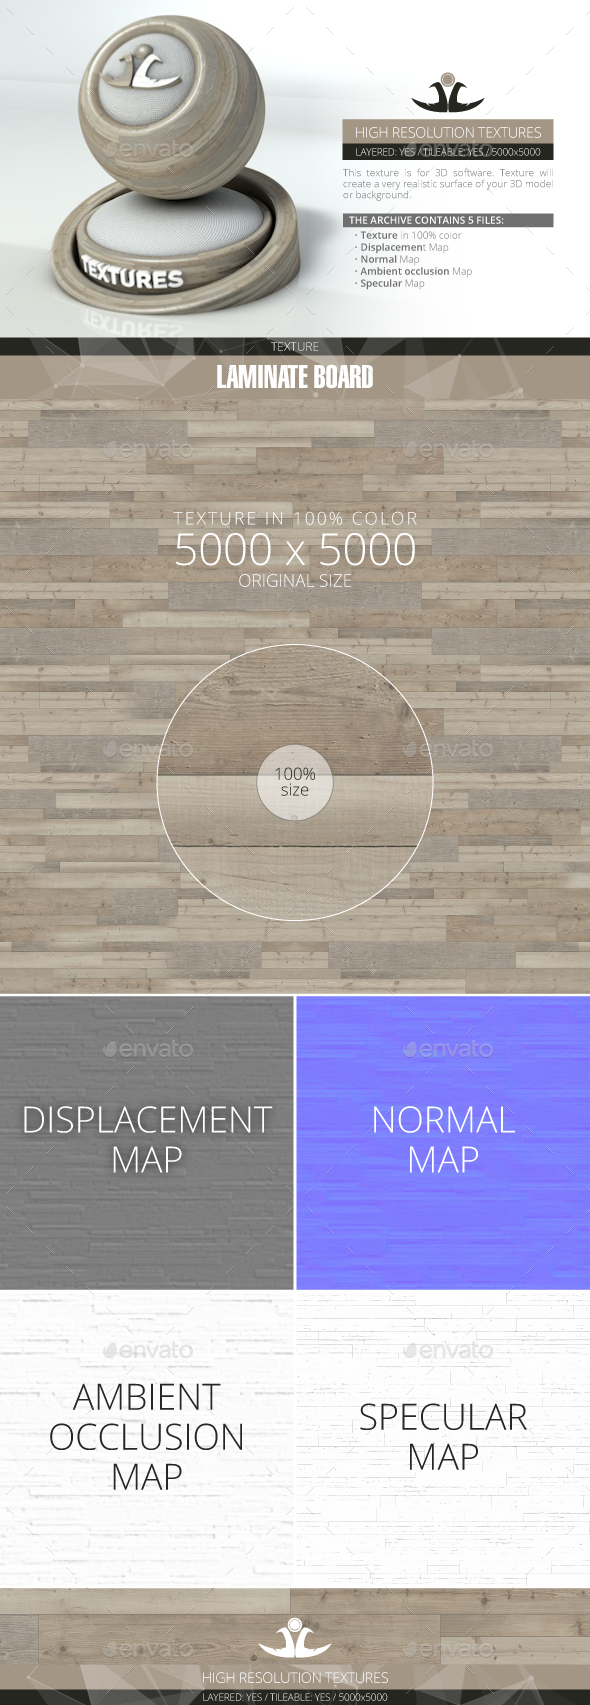 Laminate Board 36 - 3DOcean Item for Sale